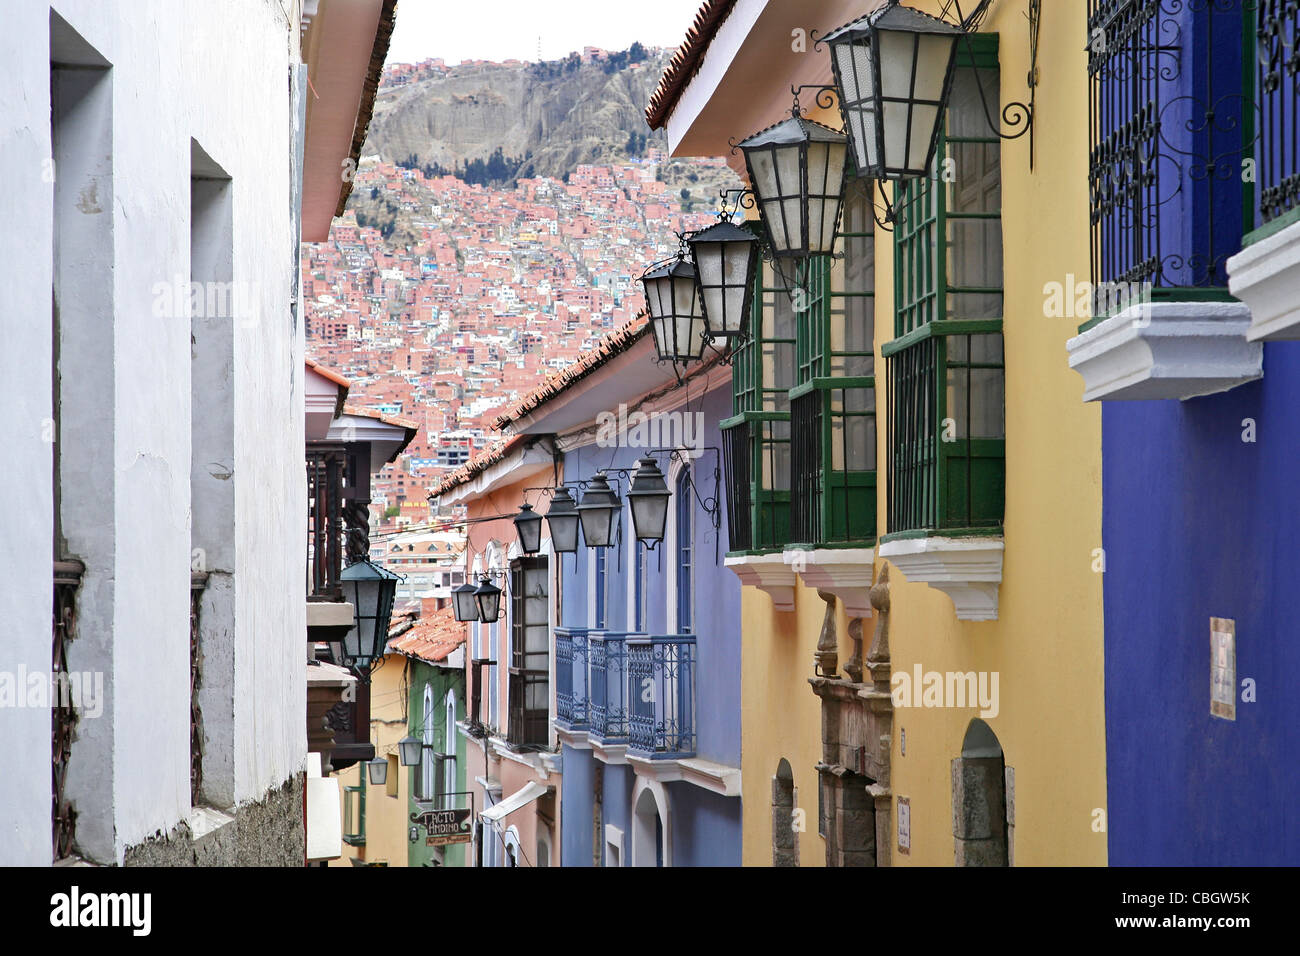 Colourful houses in the Calle Jaen, a colonial street in Spanish style in La Paz, Bolivia - Stock Image